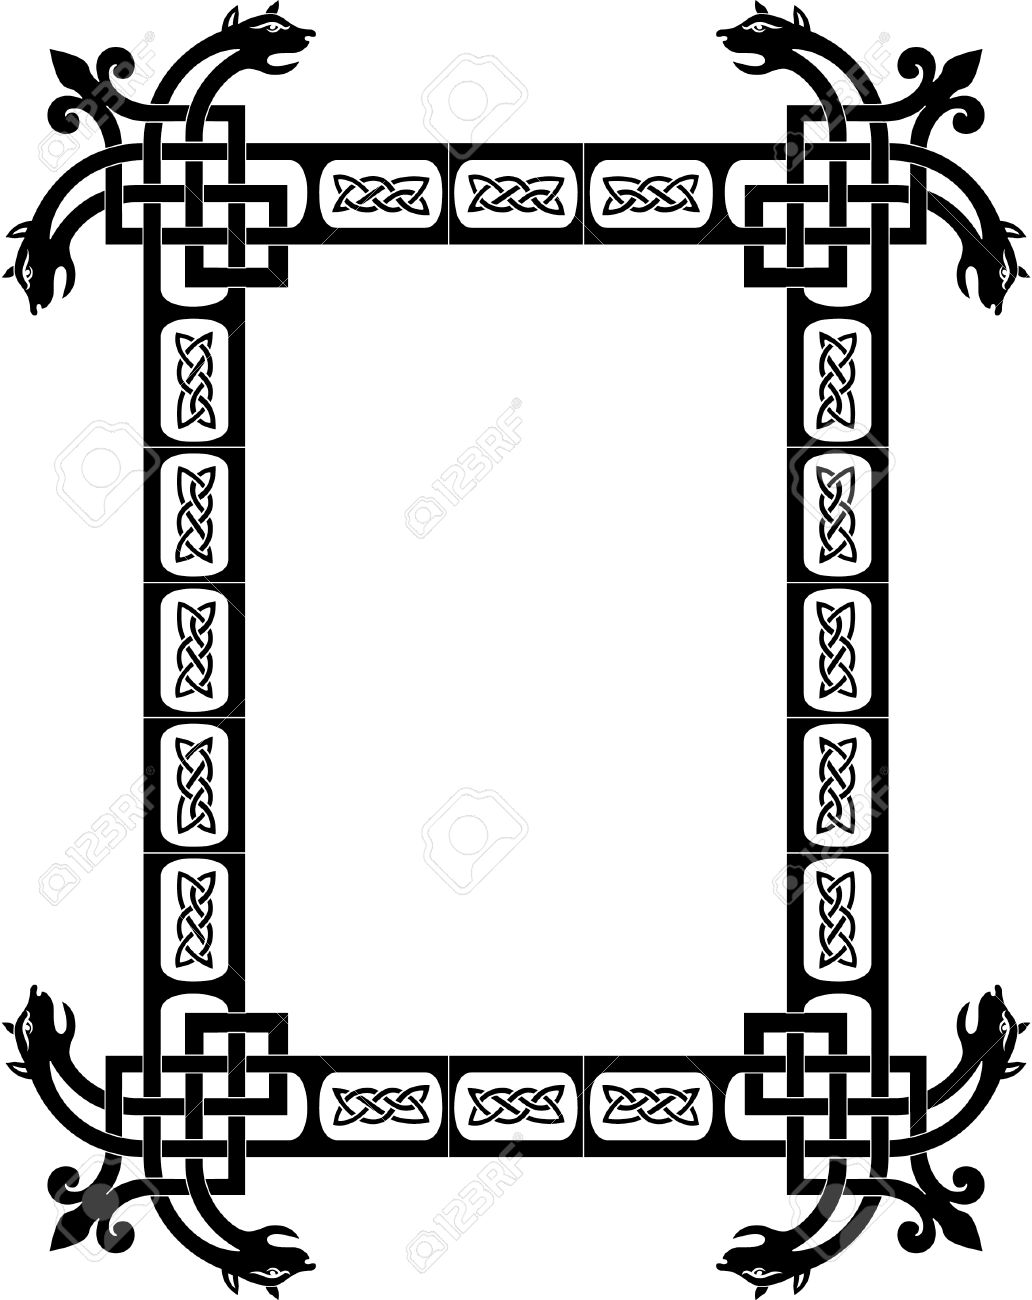 Tiled arabesque vector frame, with corners, Grayscale Stock Vector - 23504985